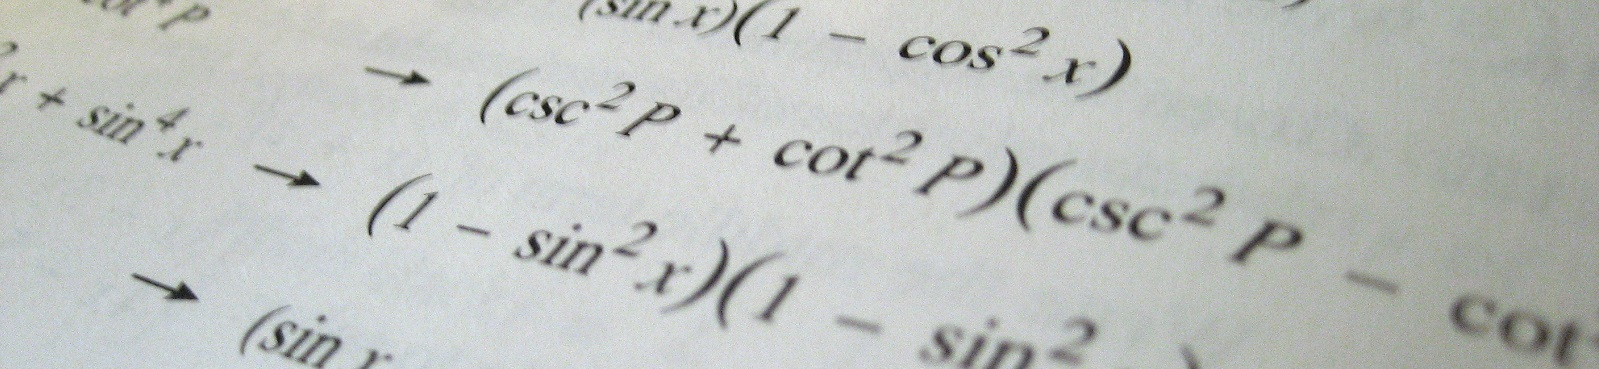 Math Equations photo